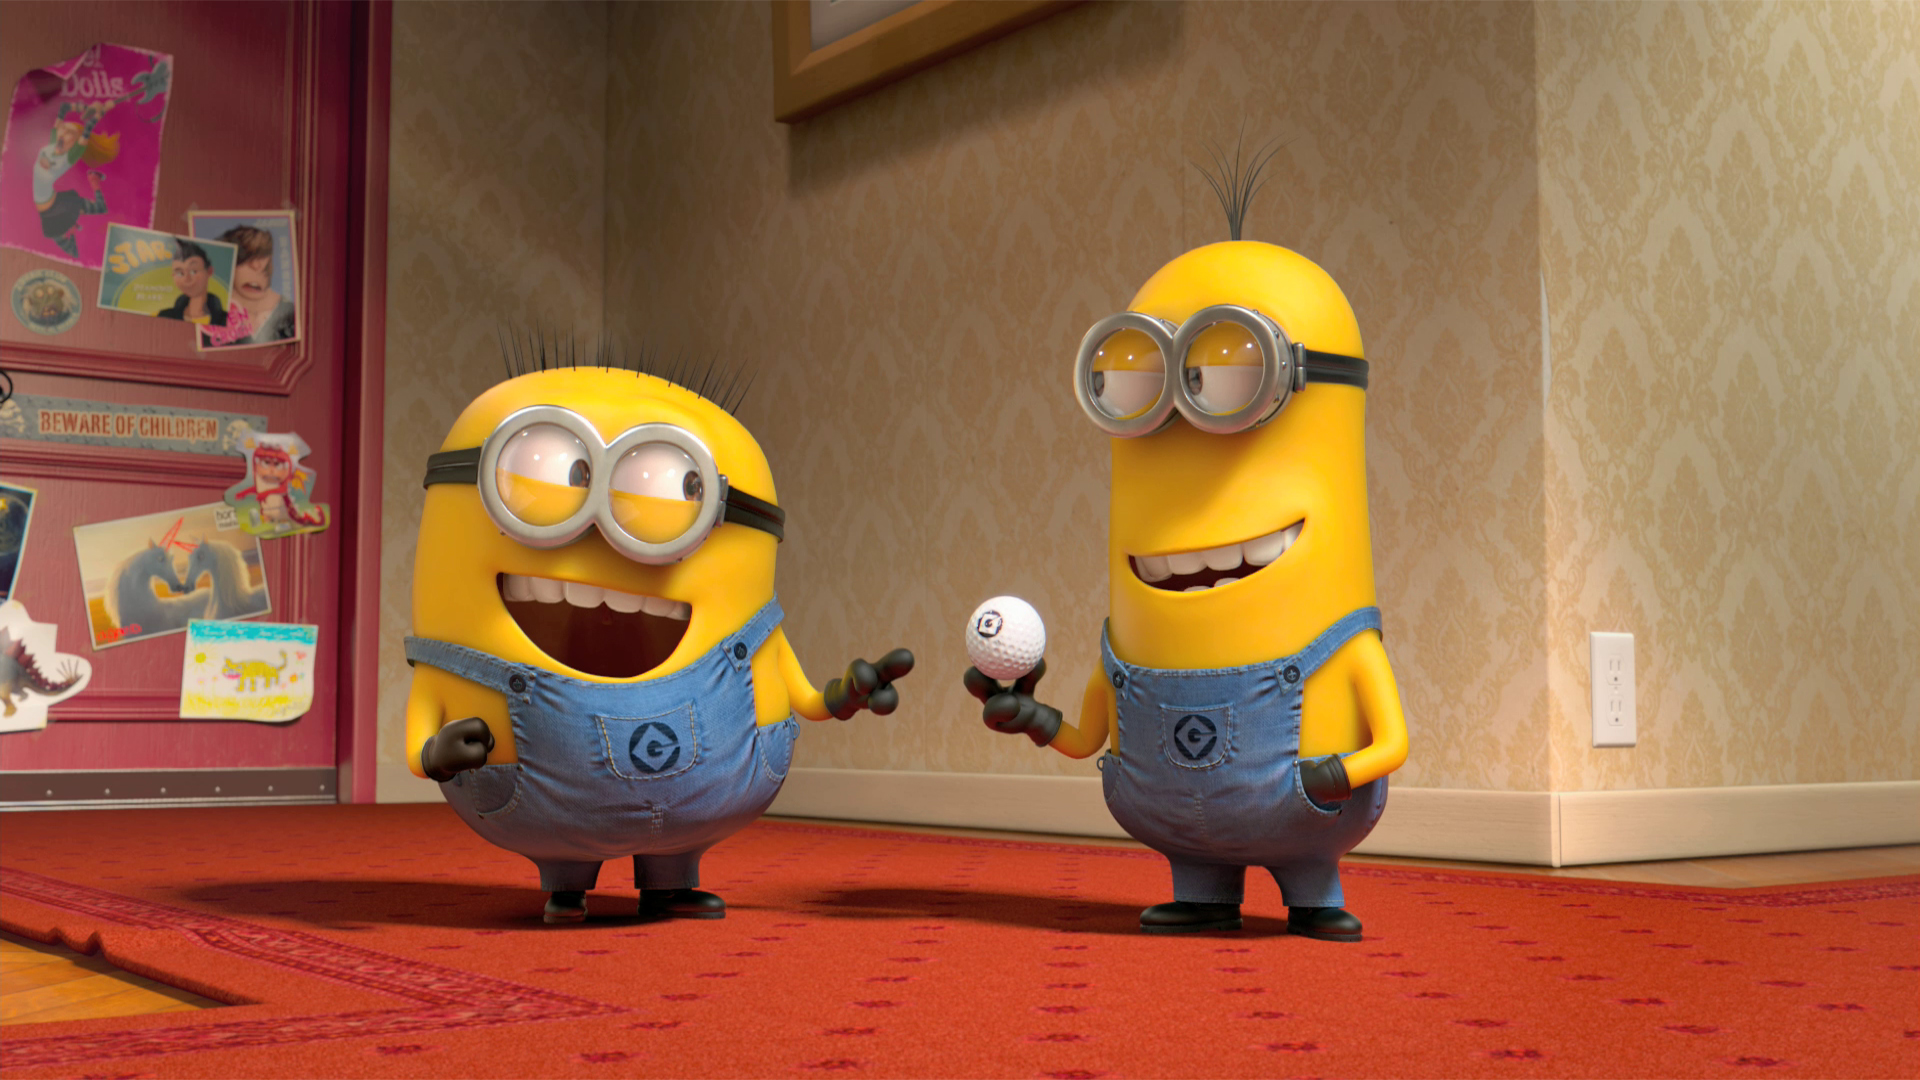 Despicable-Me-HD-Images-Despicable-Me-Collection-wallpaper-wpc9004216